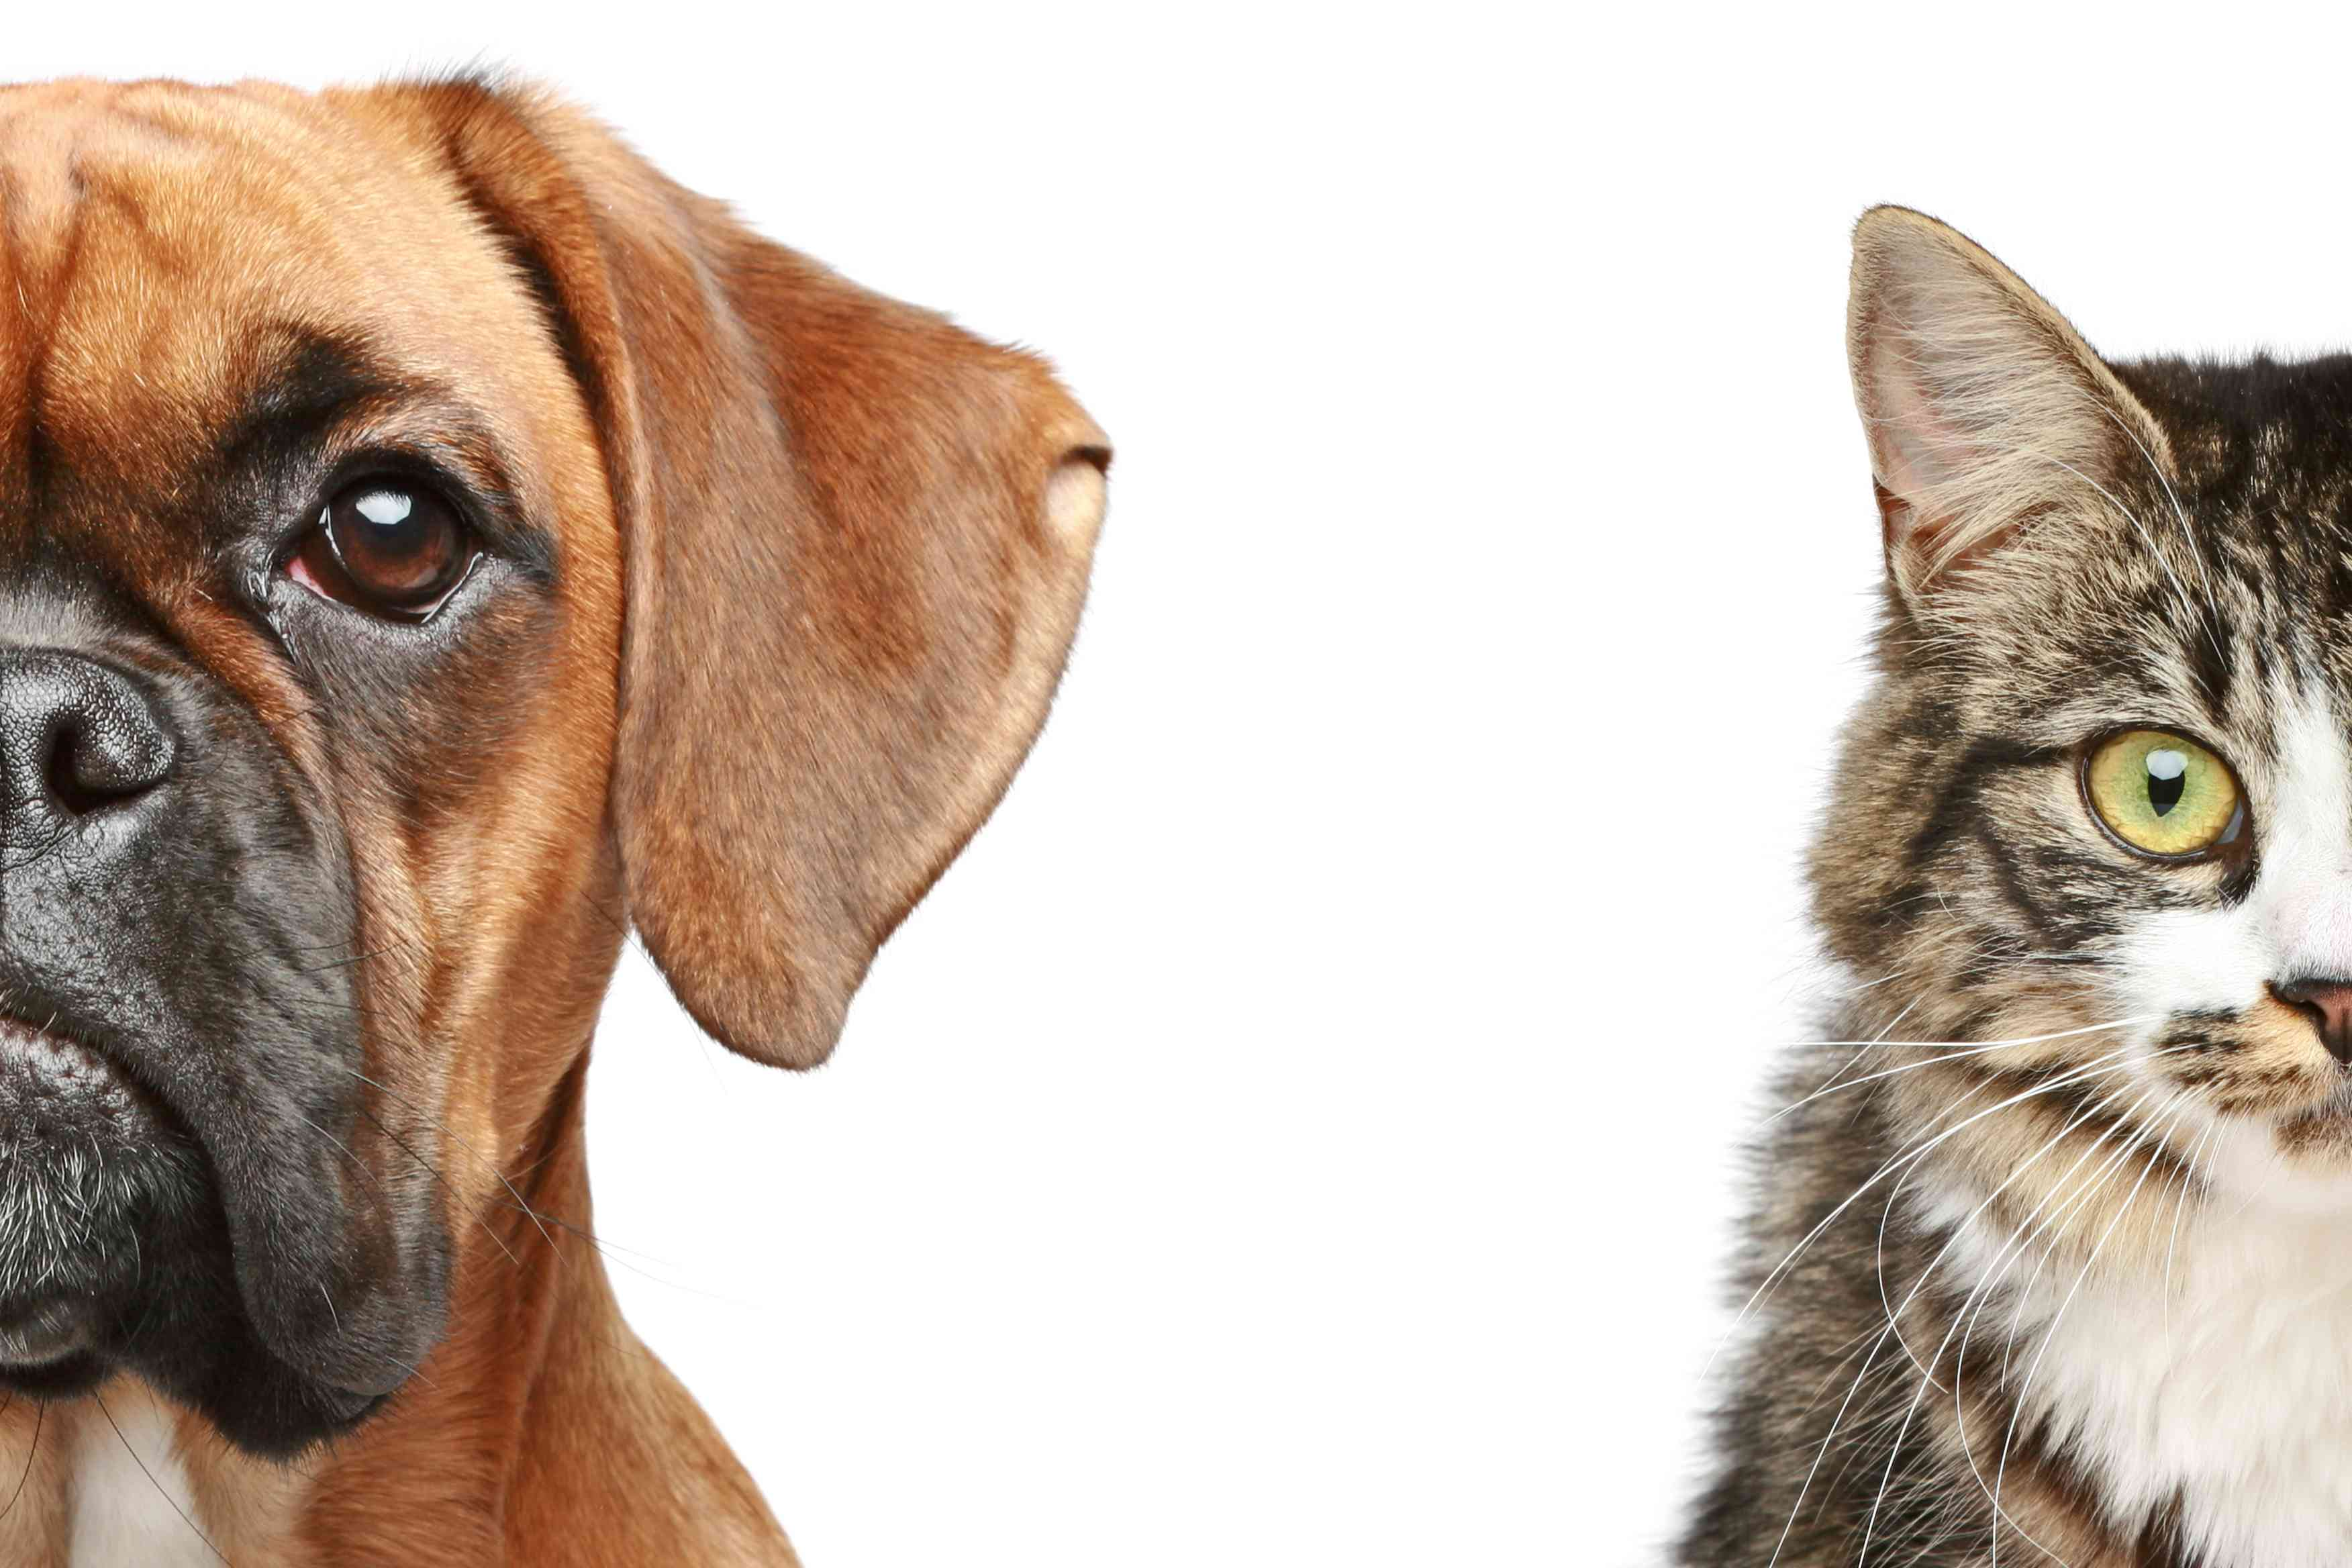 Close-up of dog and cat side by side